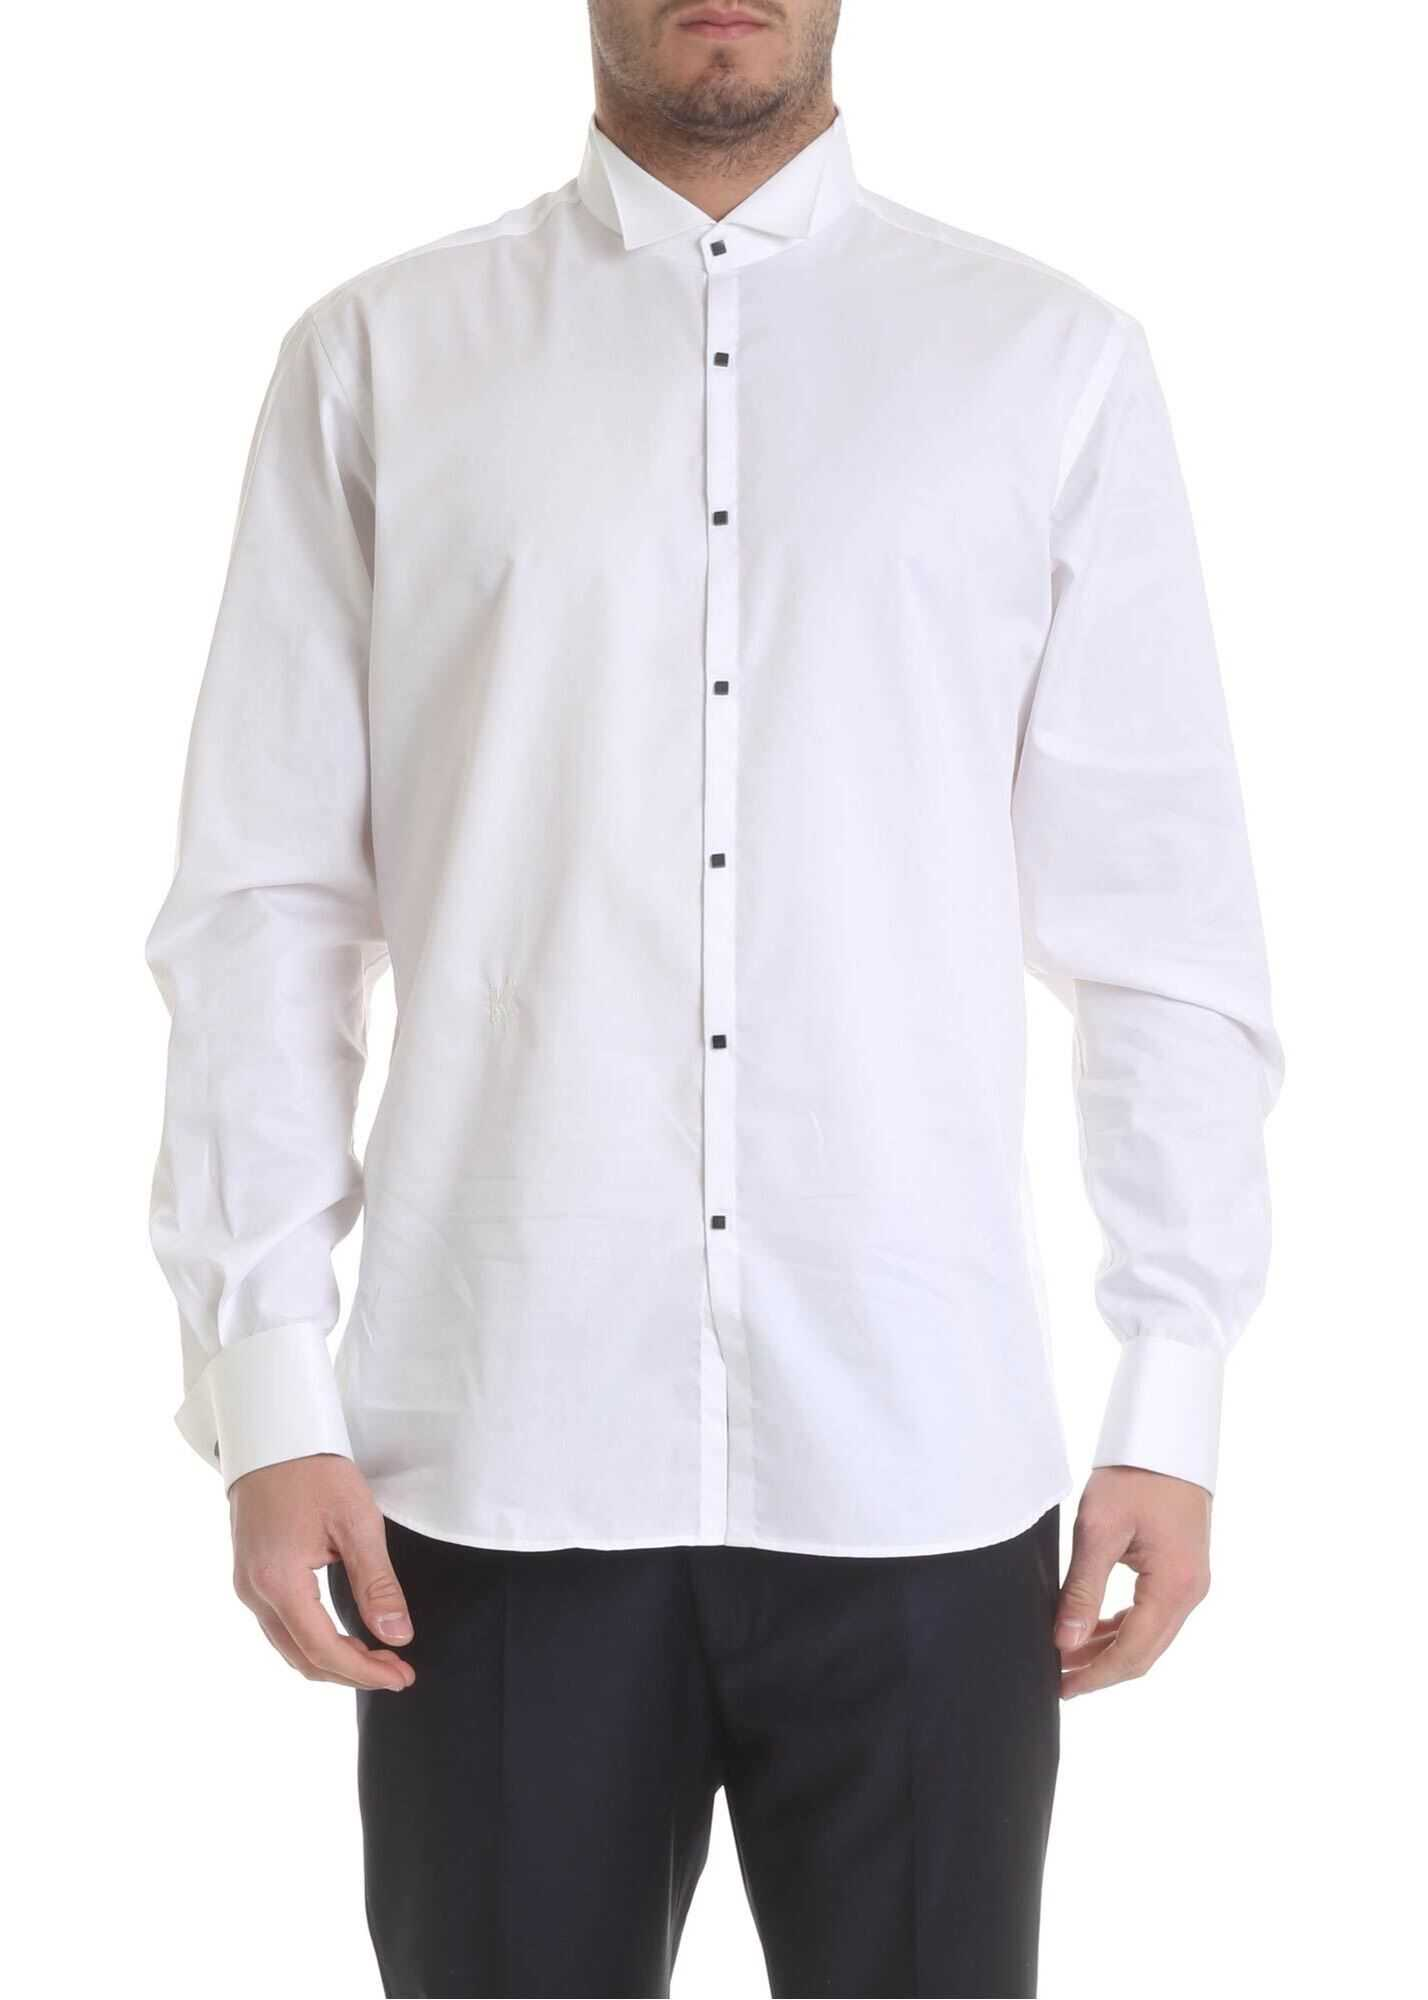 Karl Lagerfeld White Shirt With Studded Buttons White imagine